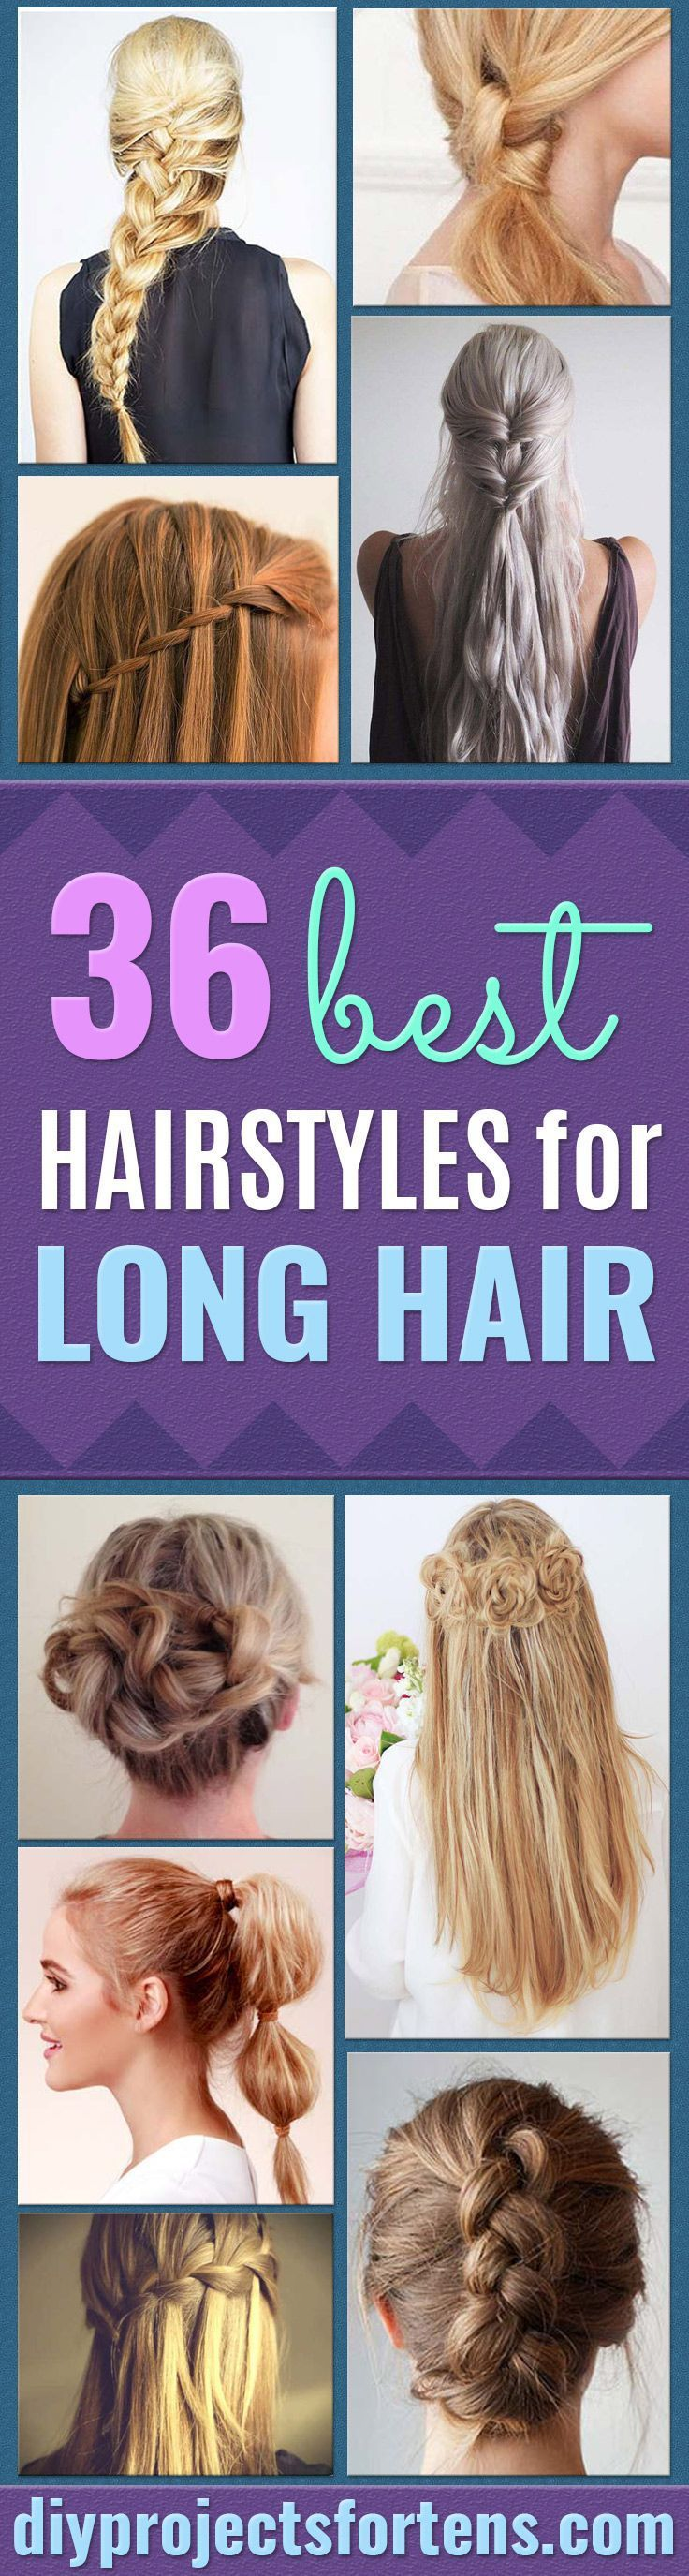 186 best Hairstyles Inspiration images on Pinterest